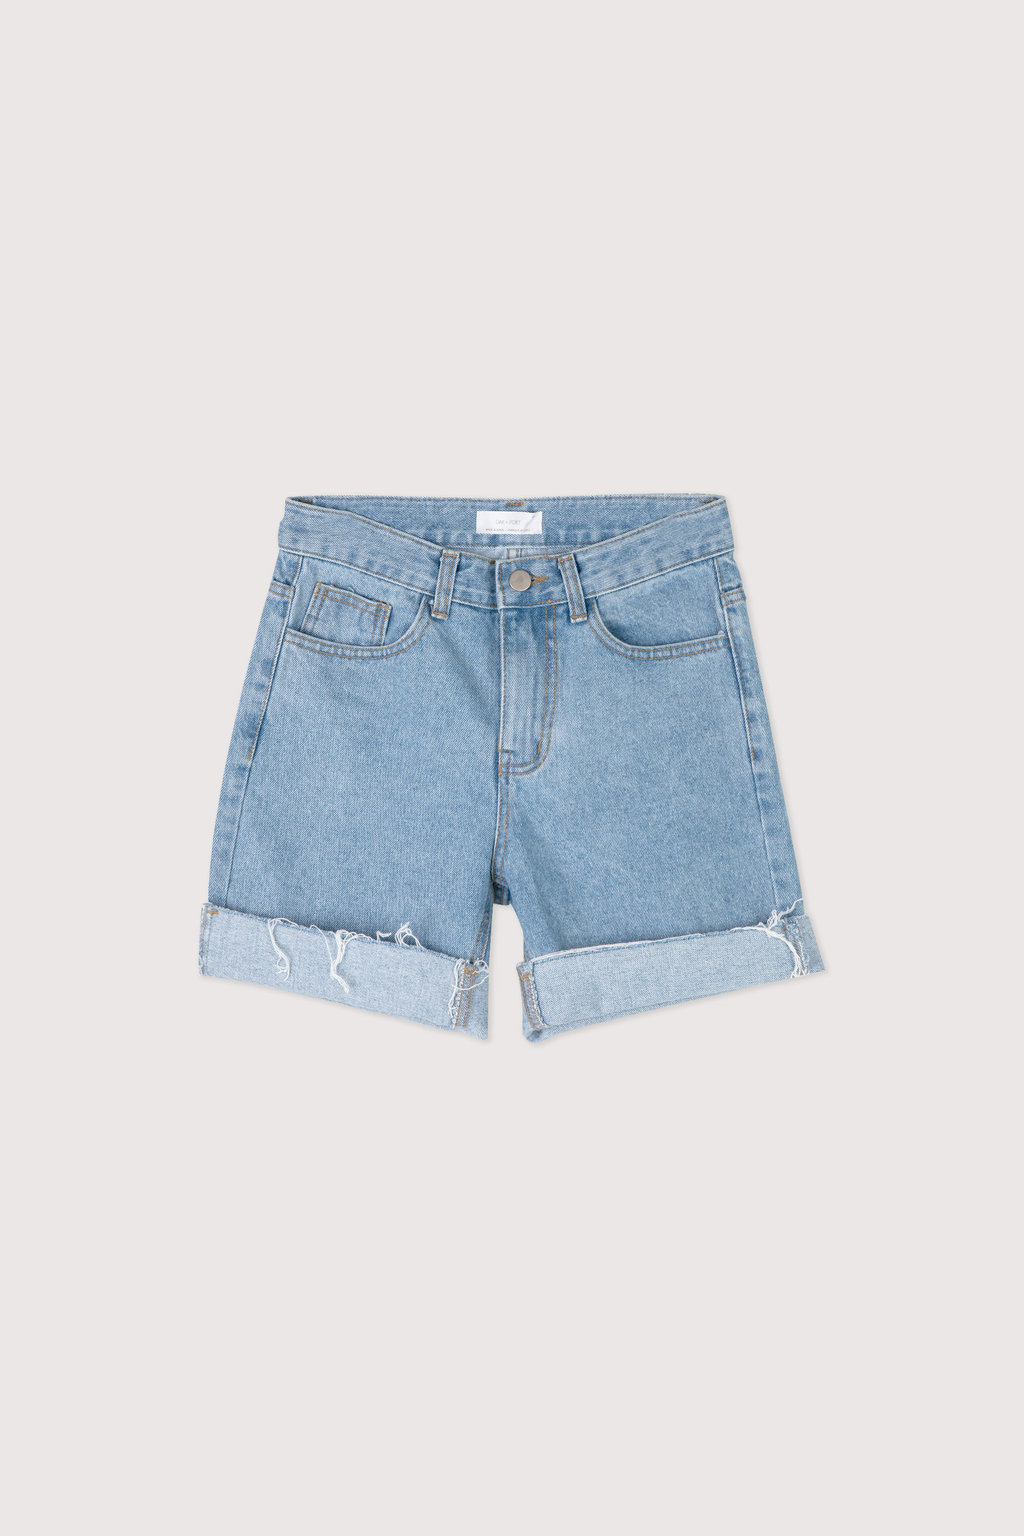 Short K006 Light Blue 5